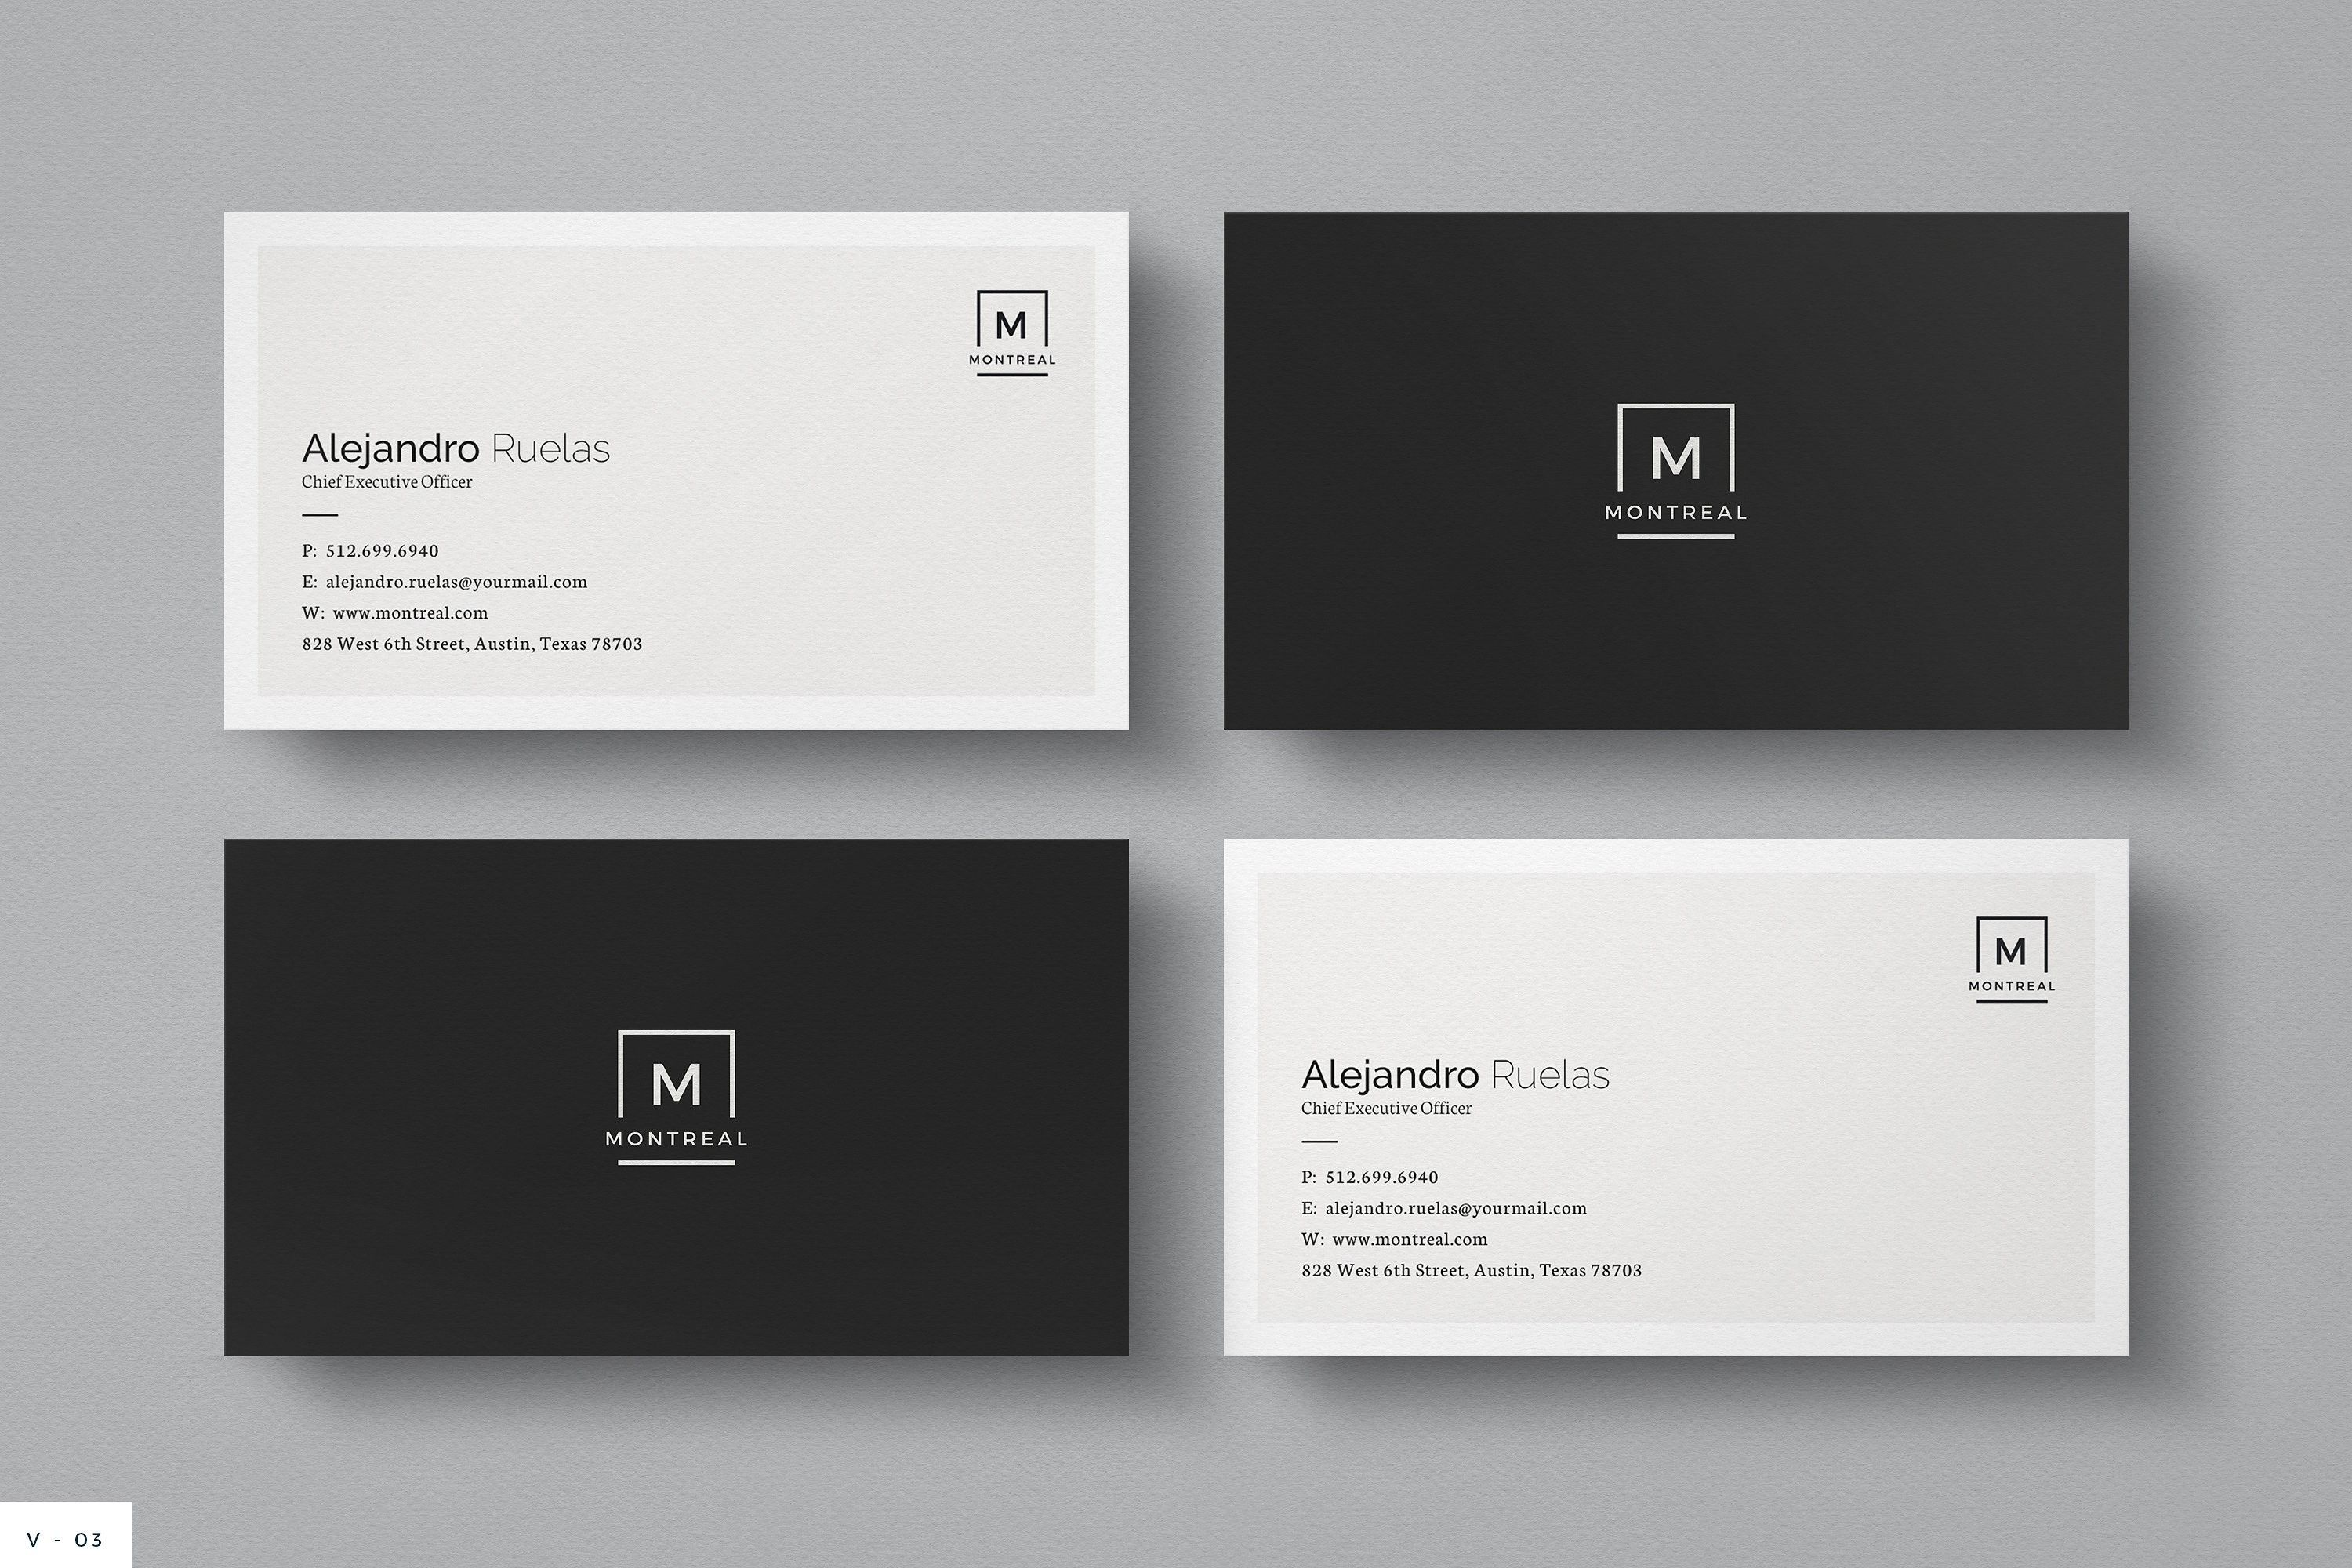 Elegant Business Cards Uk Black And White Design Inspiration In Black And White Business Ca Business Cards Creative Cleaning Business Cards White Business Card